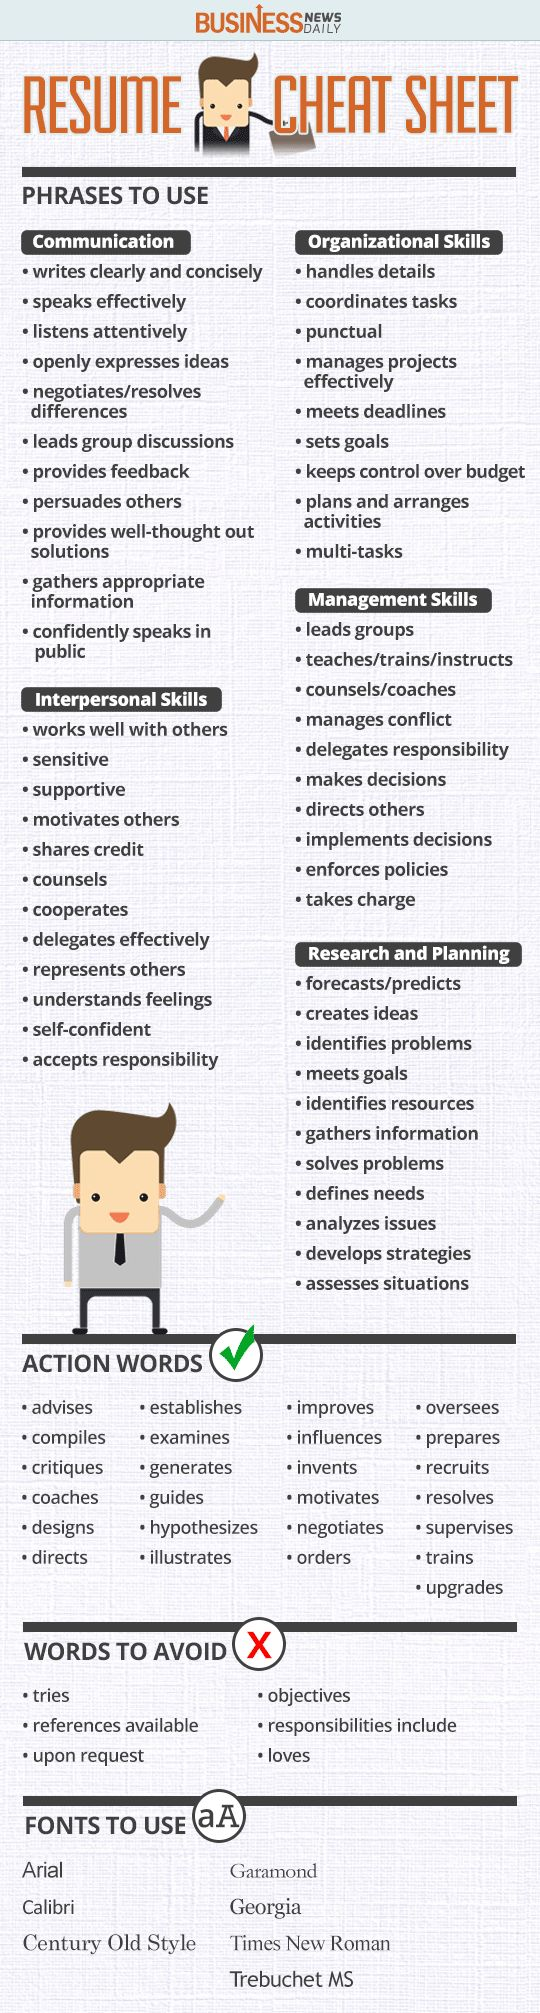 Opposenewapstandardsus  Splendid  Ideas About Resume On Pinterest  Cv Format Resume Cv And  With Remarkable Resume Cheat Sheet Infographic Andrews Almost Done With A Complete Unit On Employment Which With Captivating Career Fair Resume Also Resume Objective Teacher In Addition Mft Intern Resume And Resume Reference List Template As Well As Server Job Resume Additionally Court Reporter Resume From Pinterestcom With Opposenewapstandardsus  Remarkable  Ideas About Resume On Pinterest  Cv Format Resume Cv And  With Captivating Resume Cheat Sheet Infographic Andrews Almost Done With A Complete Unit On Employment Which And Splendid Career Fair Resume Also Resume Objective Teacher In Addition Mft Intern Resume From Pinterestcom